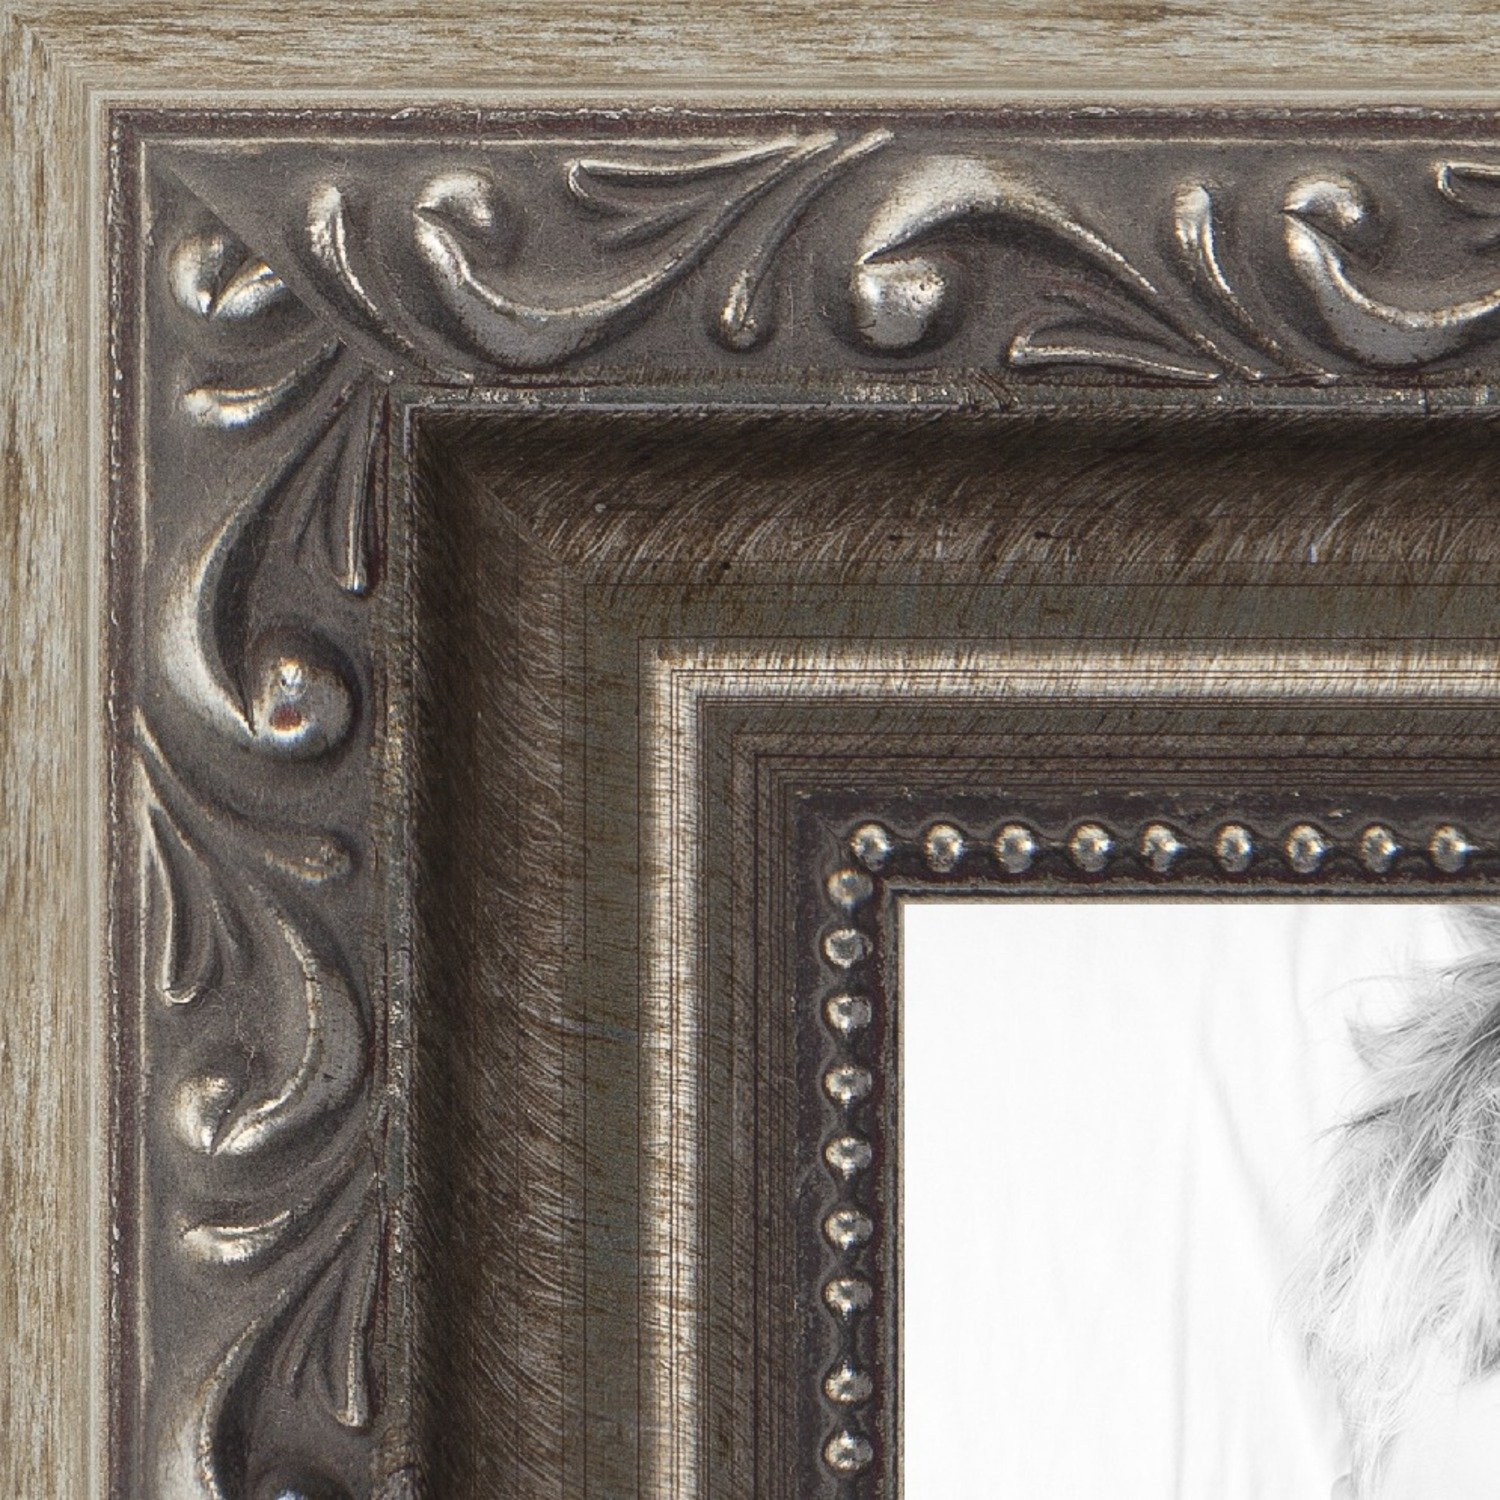 ArtToFrames 24x35 inch Antique Silver with Beads Wood Picture Frame, 2WOMD6661-24x35